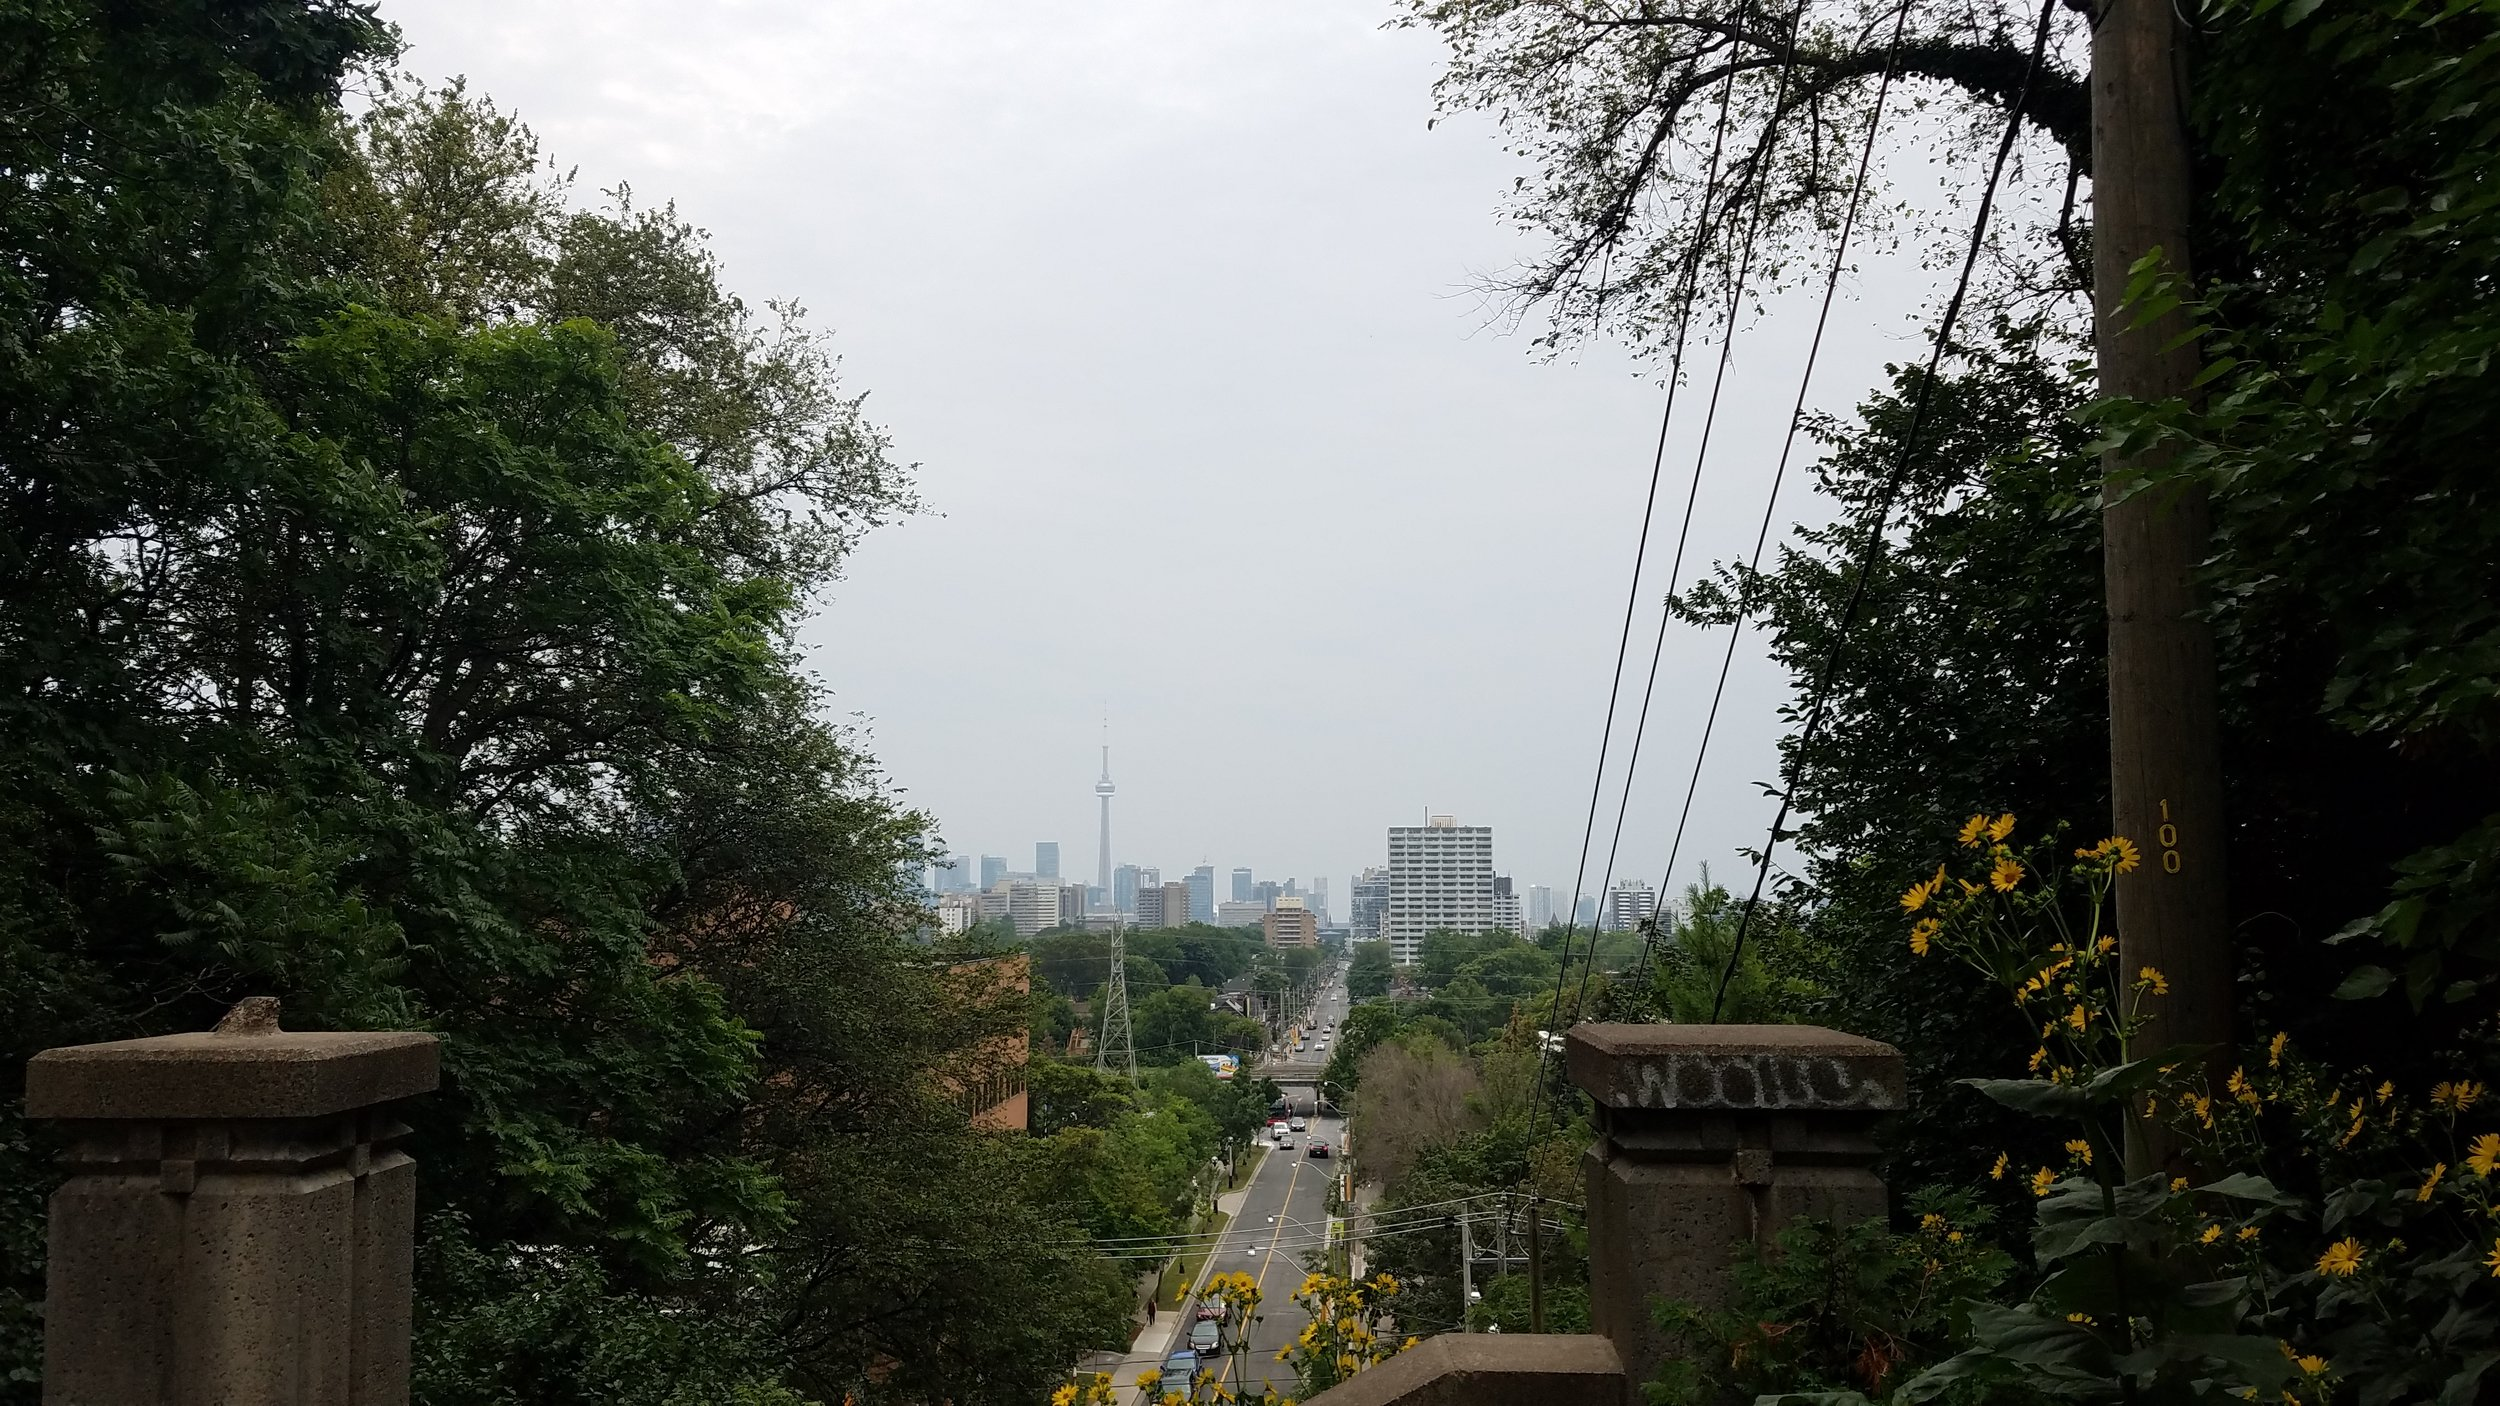 Looking downtown from Spadina Park